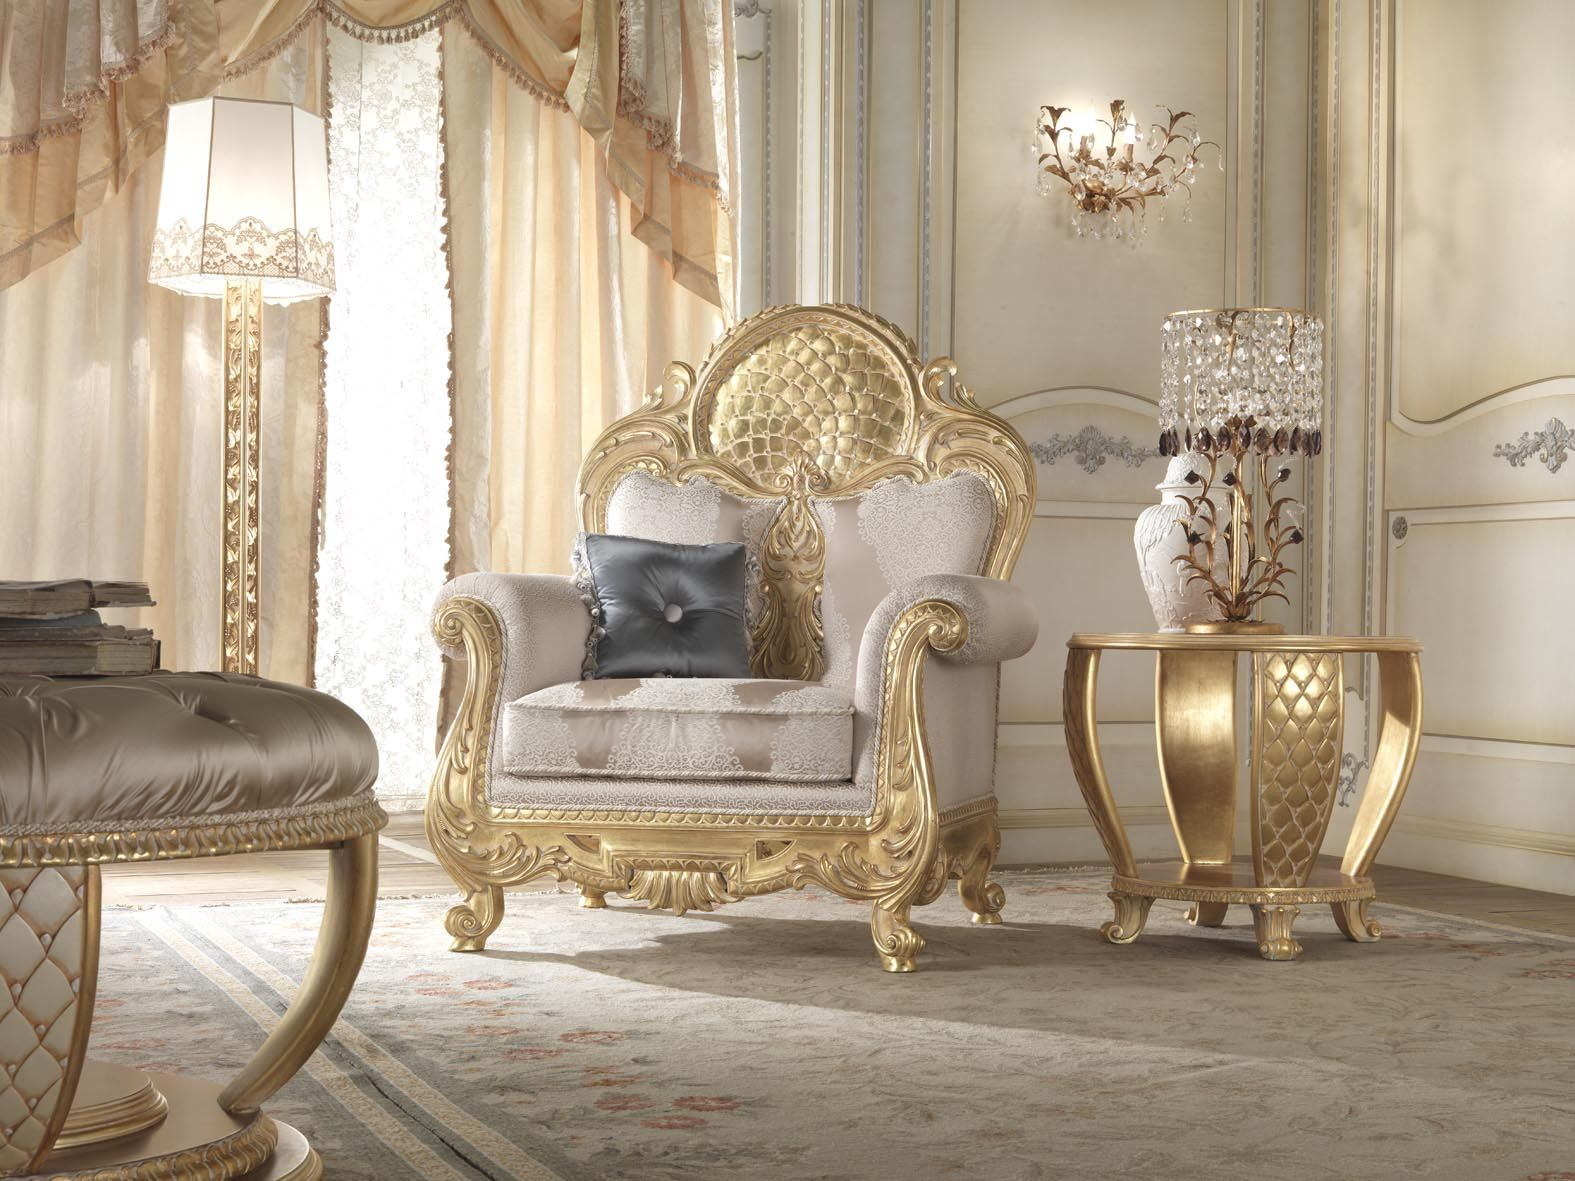 Classic Italian Furniture Top And Best Companies In Italy Egypt And France Furniture Classic Furniture Design Luxury Seating